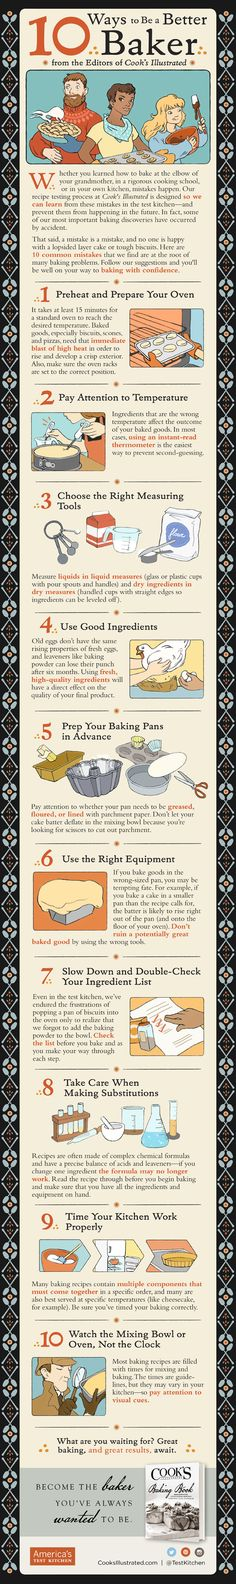 10 WAYS TO BE A BETTER BAKER [INFOGRAPHIC]: These practical kitchen tips will transform your baking routine. #Infographic #Baking